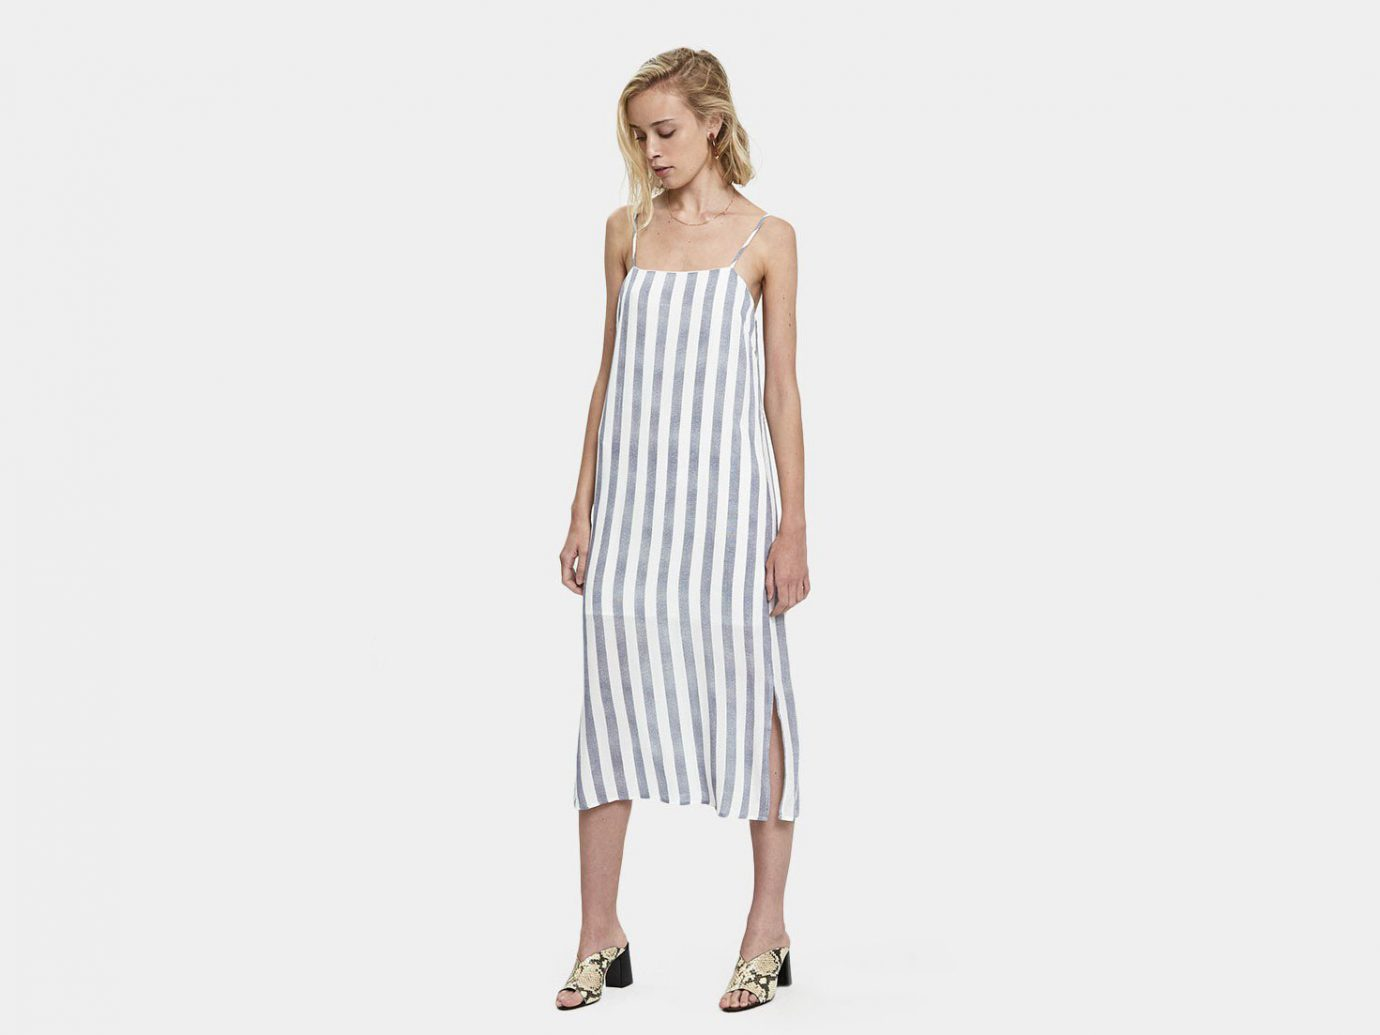 Stelen Tori Striped Dress